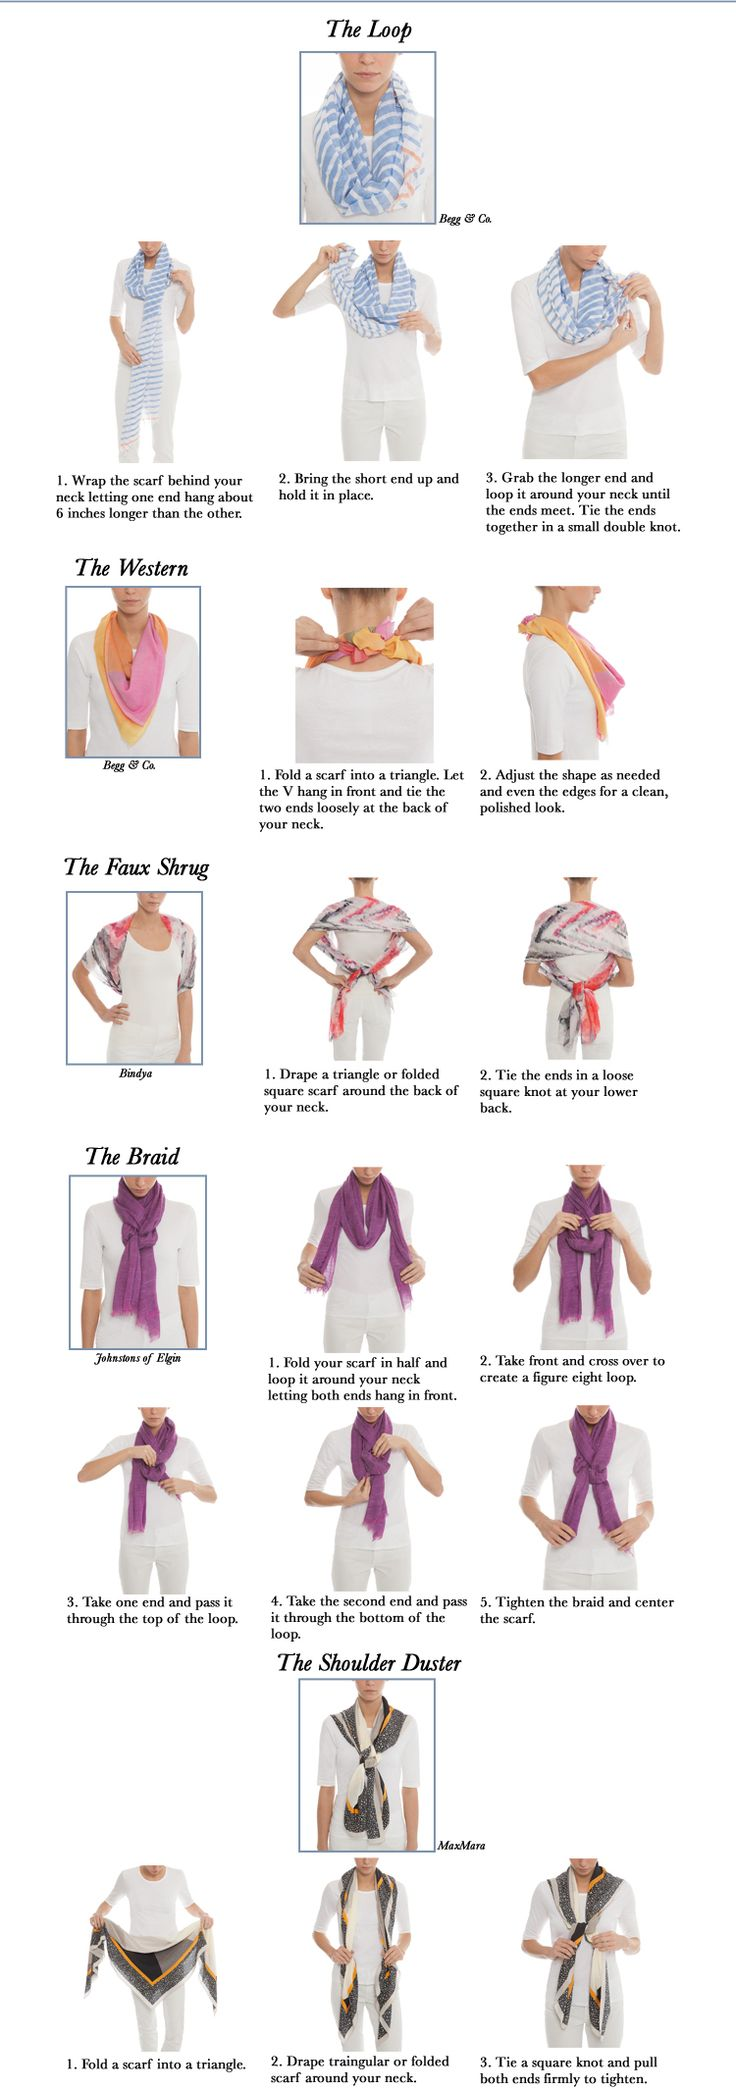 Ways to tie a scarf-- our step-by-step guide. Click the image to shop our beautiful selection of designer scarves at Halsbrook.com!